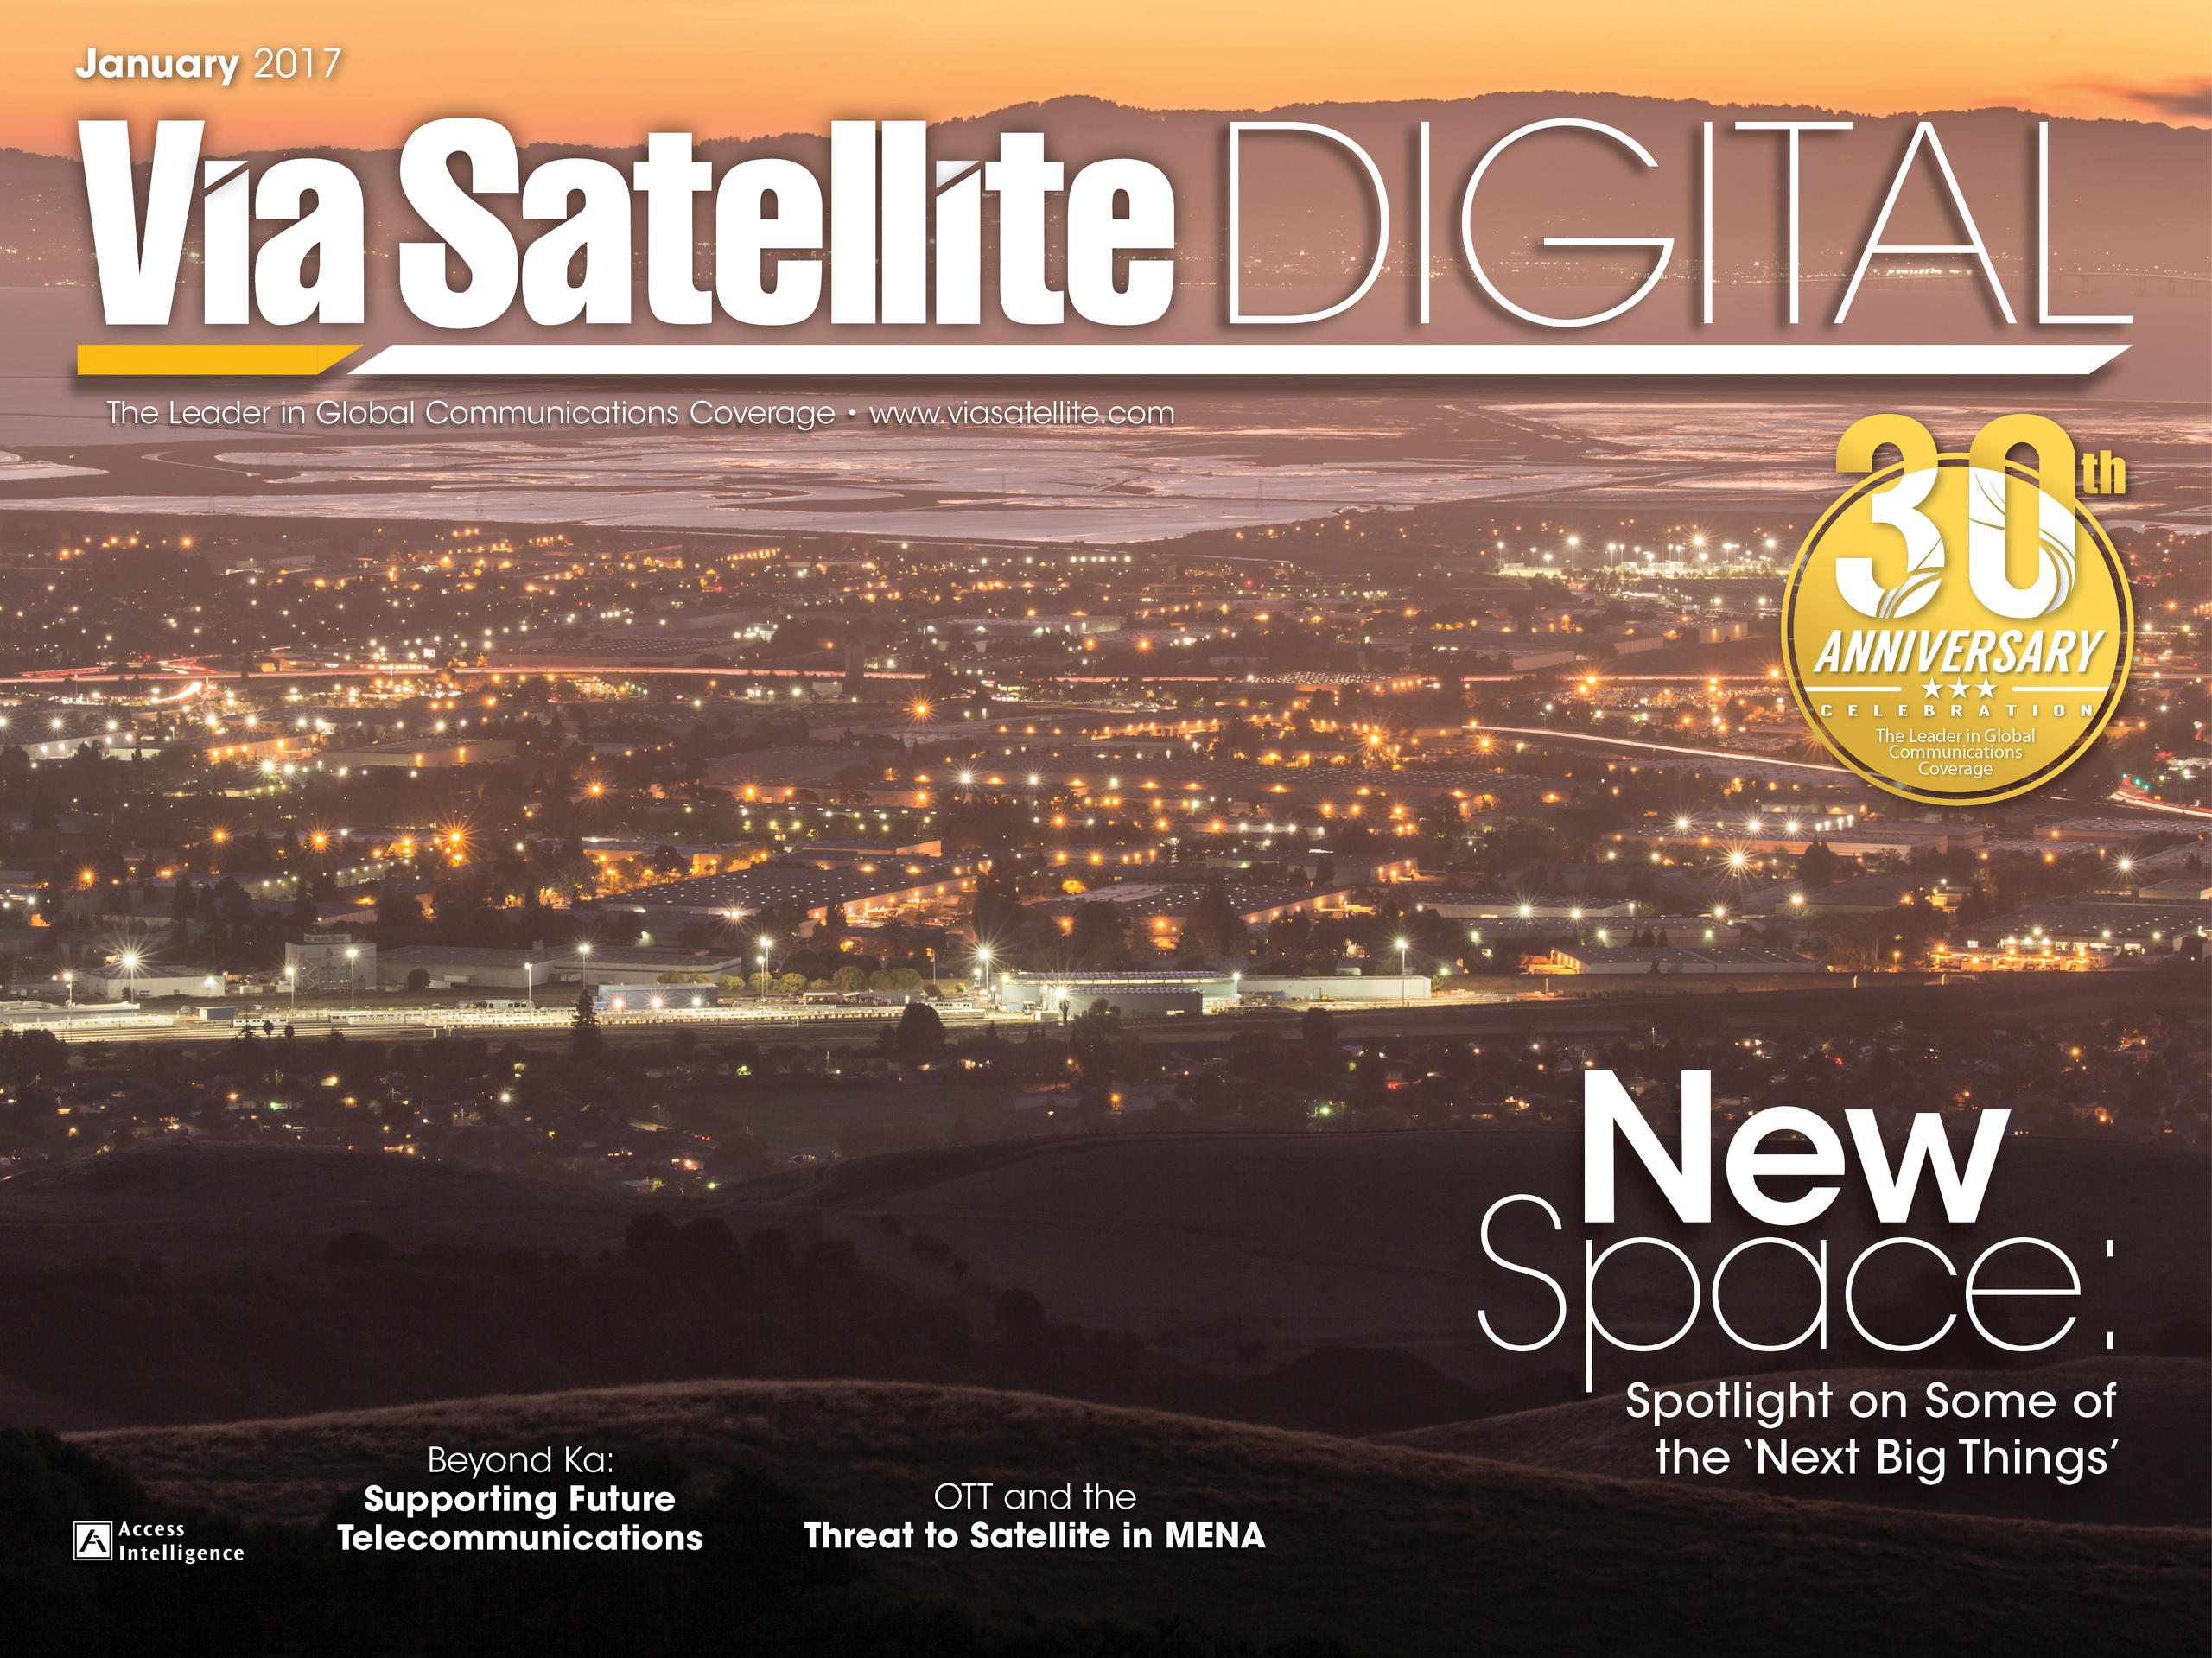 January 2017 - OTT and the Threat to Satellite in MENA | Via Satellite